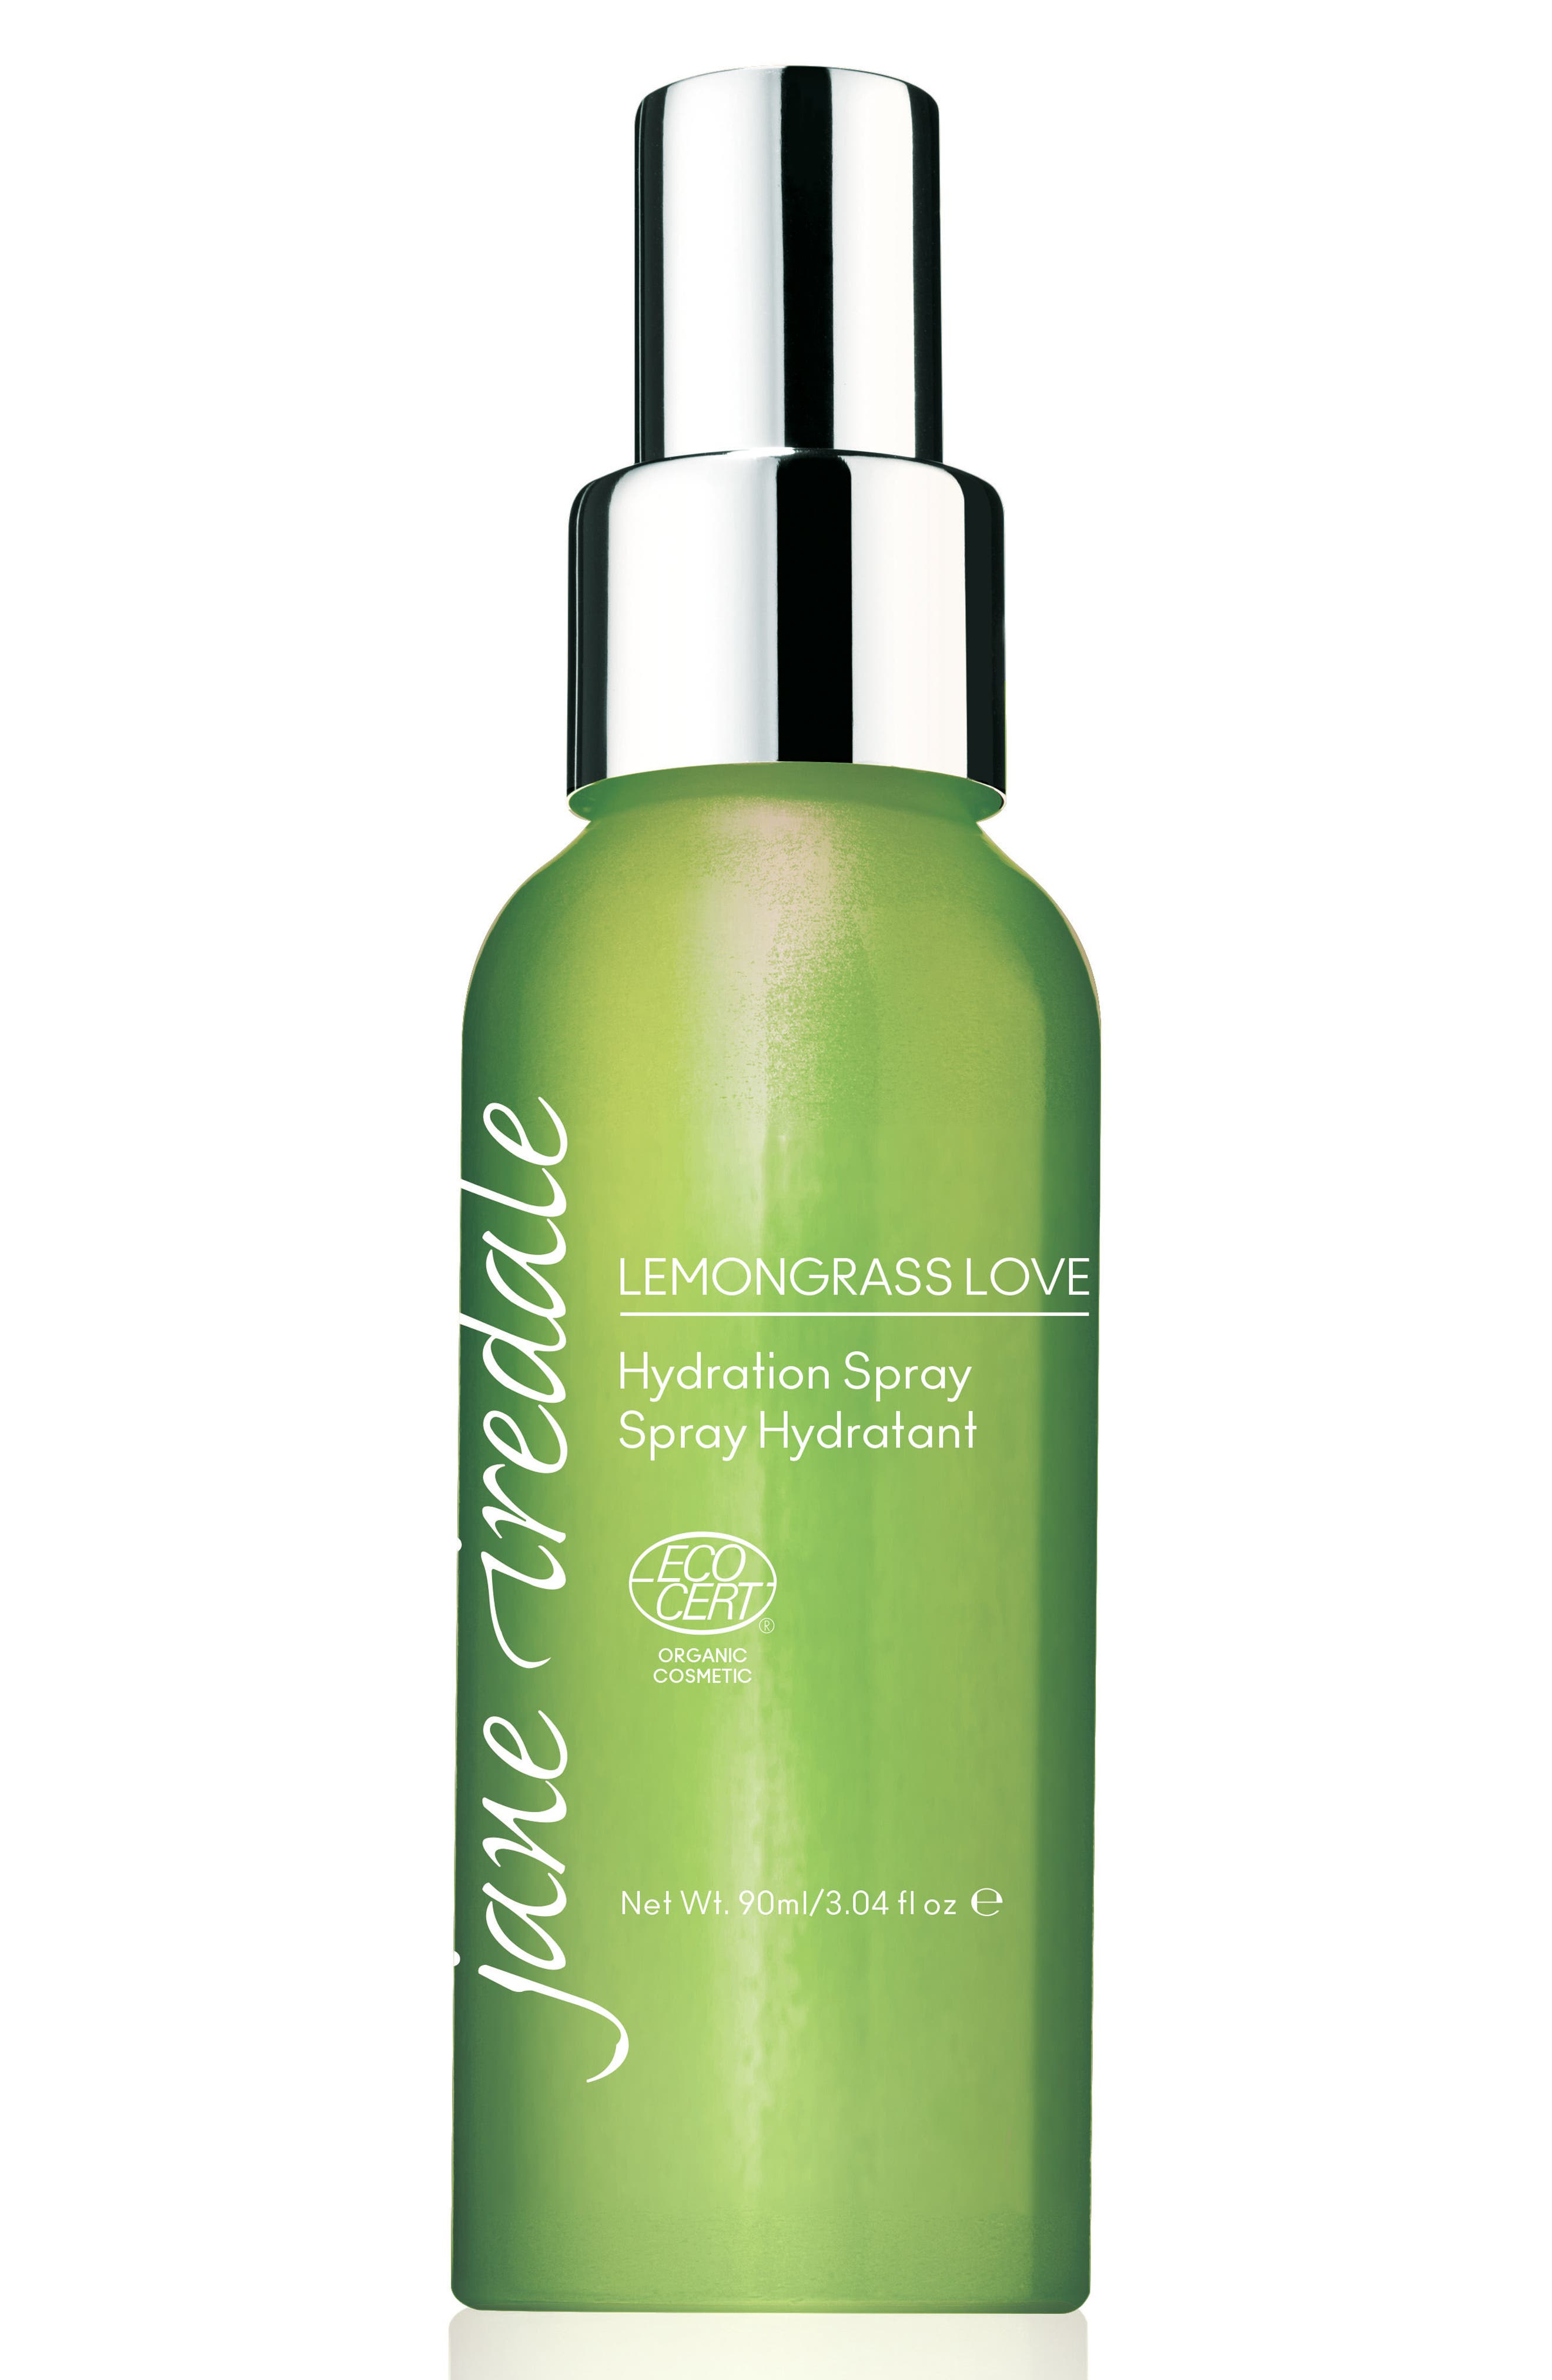 Main Image - jane iredale Lemongrass Love Hydration Spray